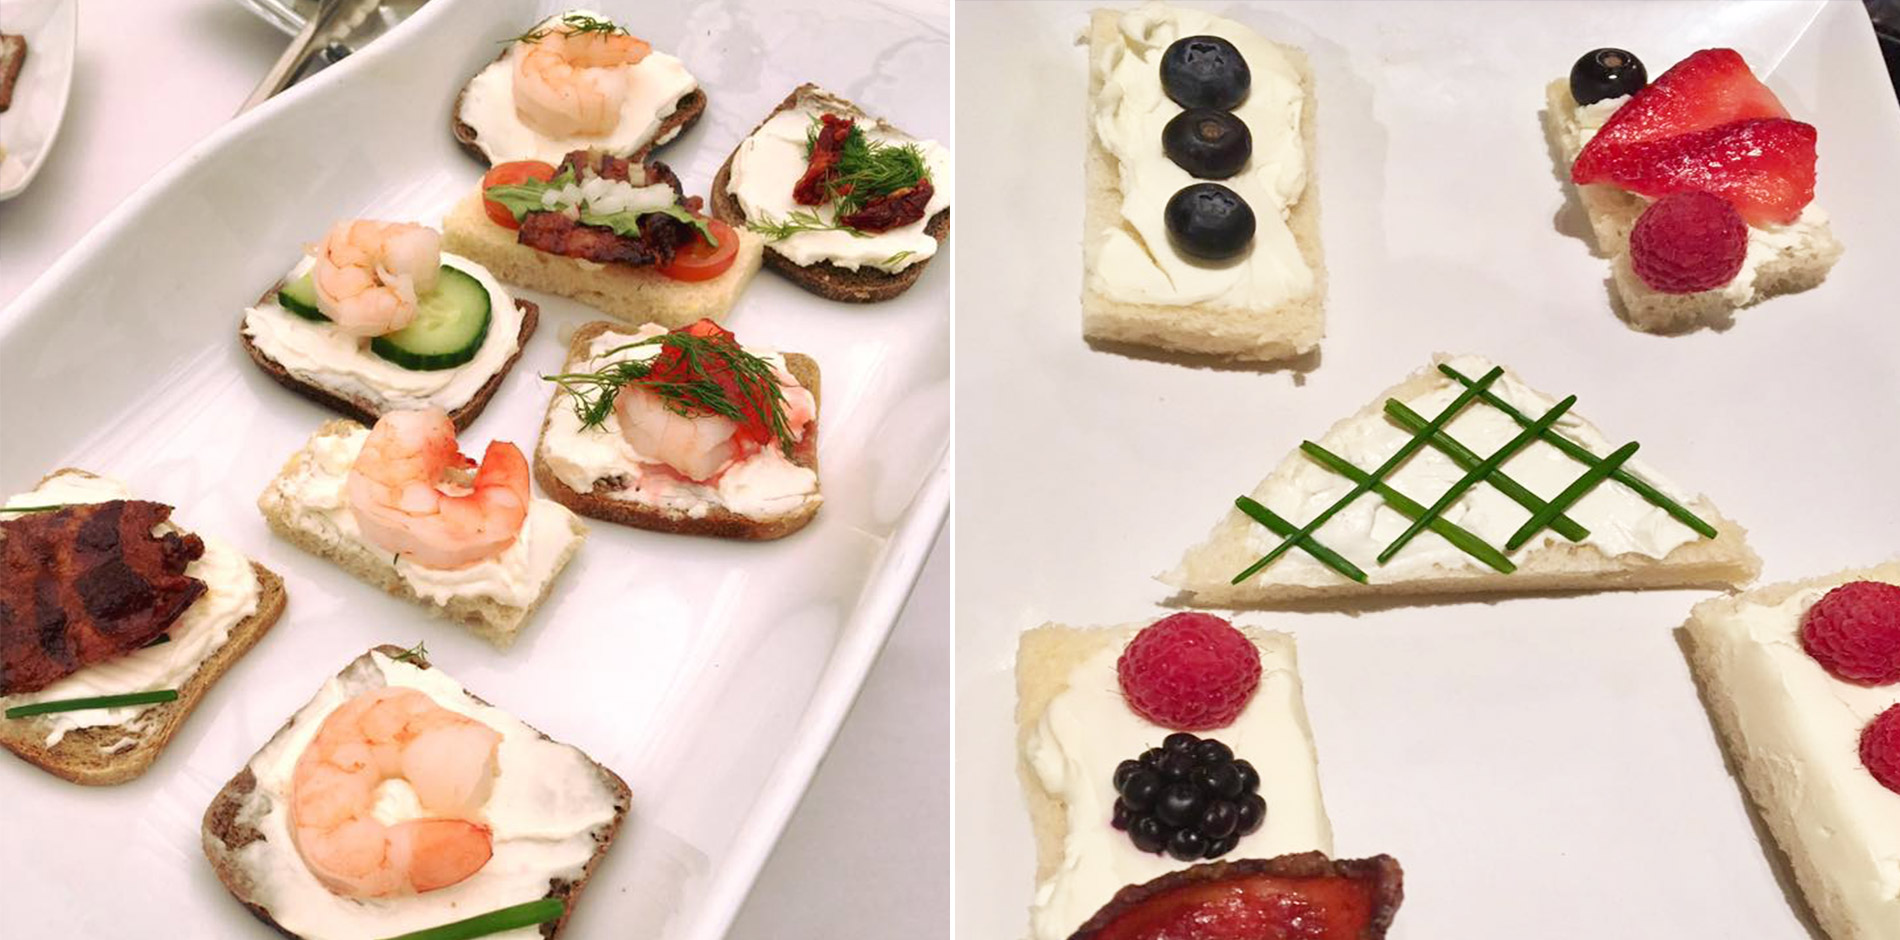 Caterer In Yakima Wa Catering Company Staci S Catering